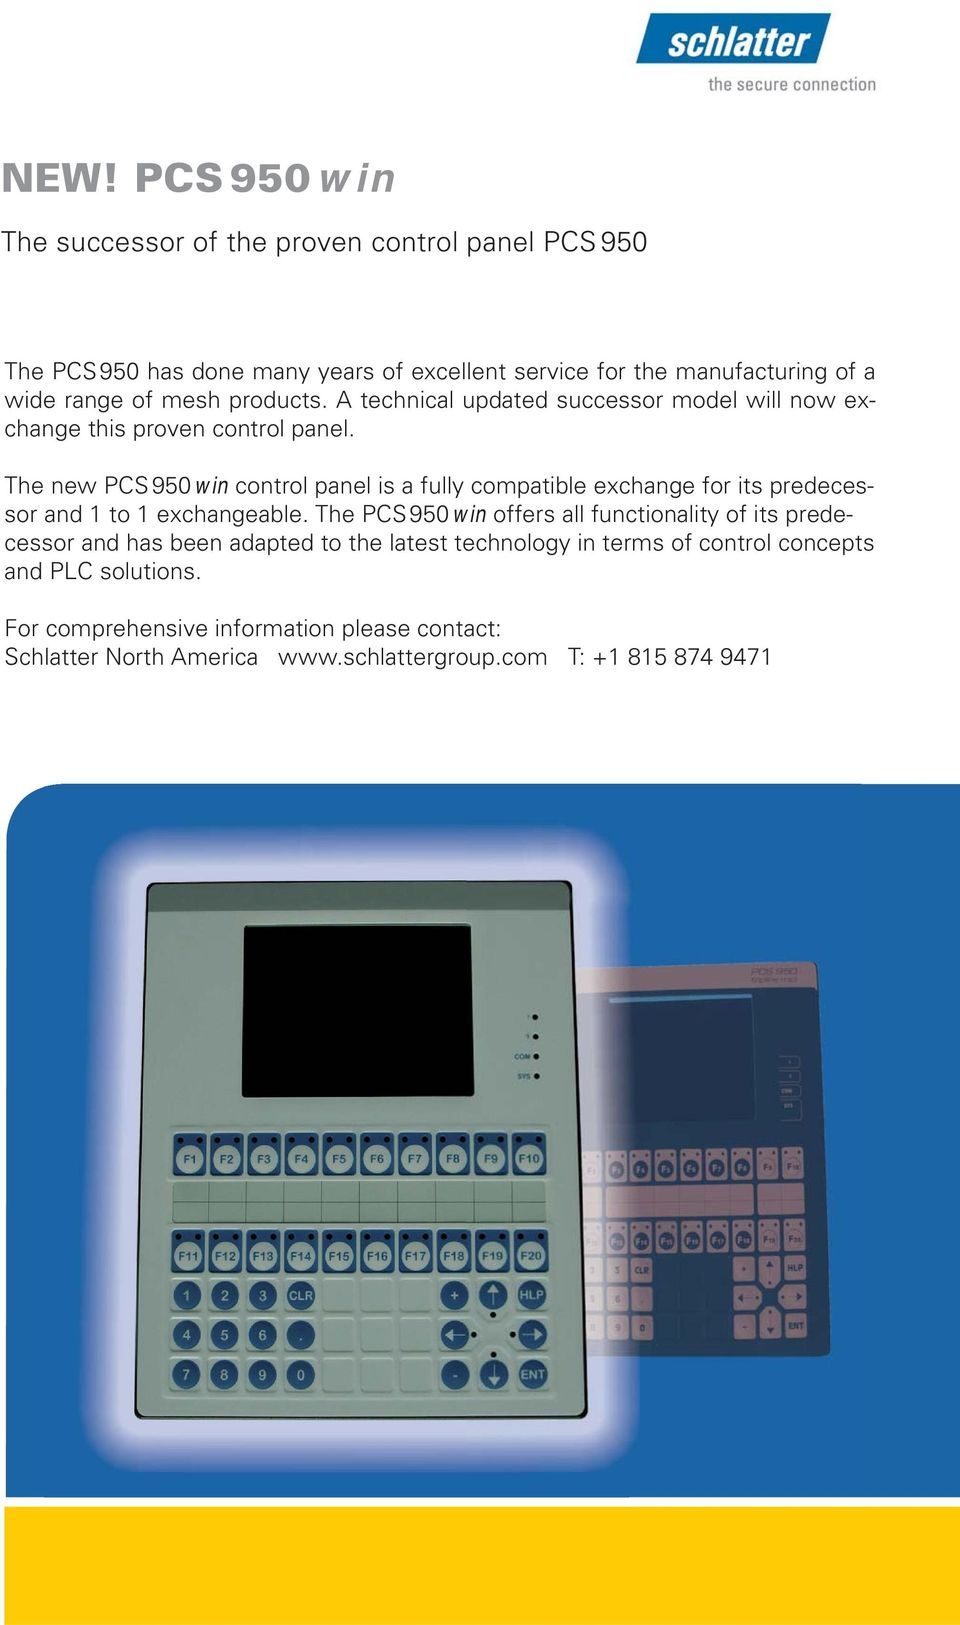 The new PCS 950 win control panel is a fully compatible exchange for its predecessor and 1 to 1 exchangeable.